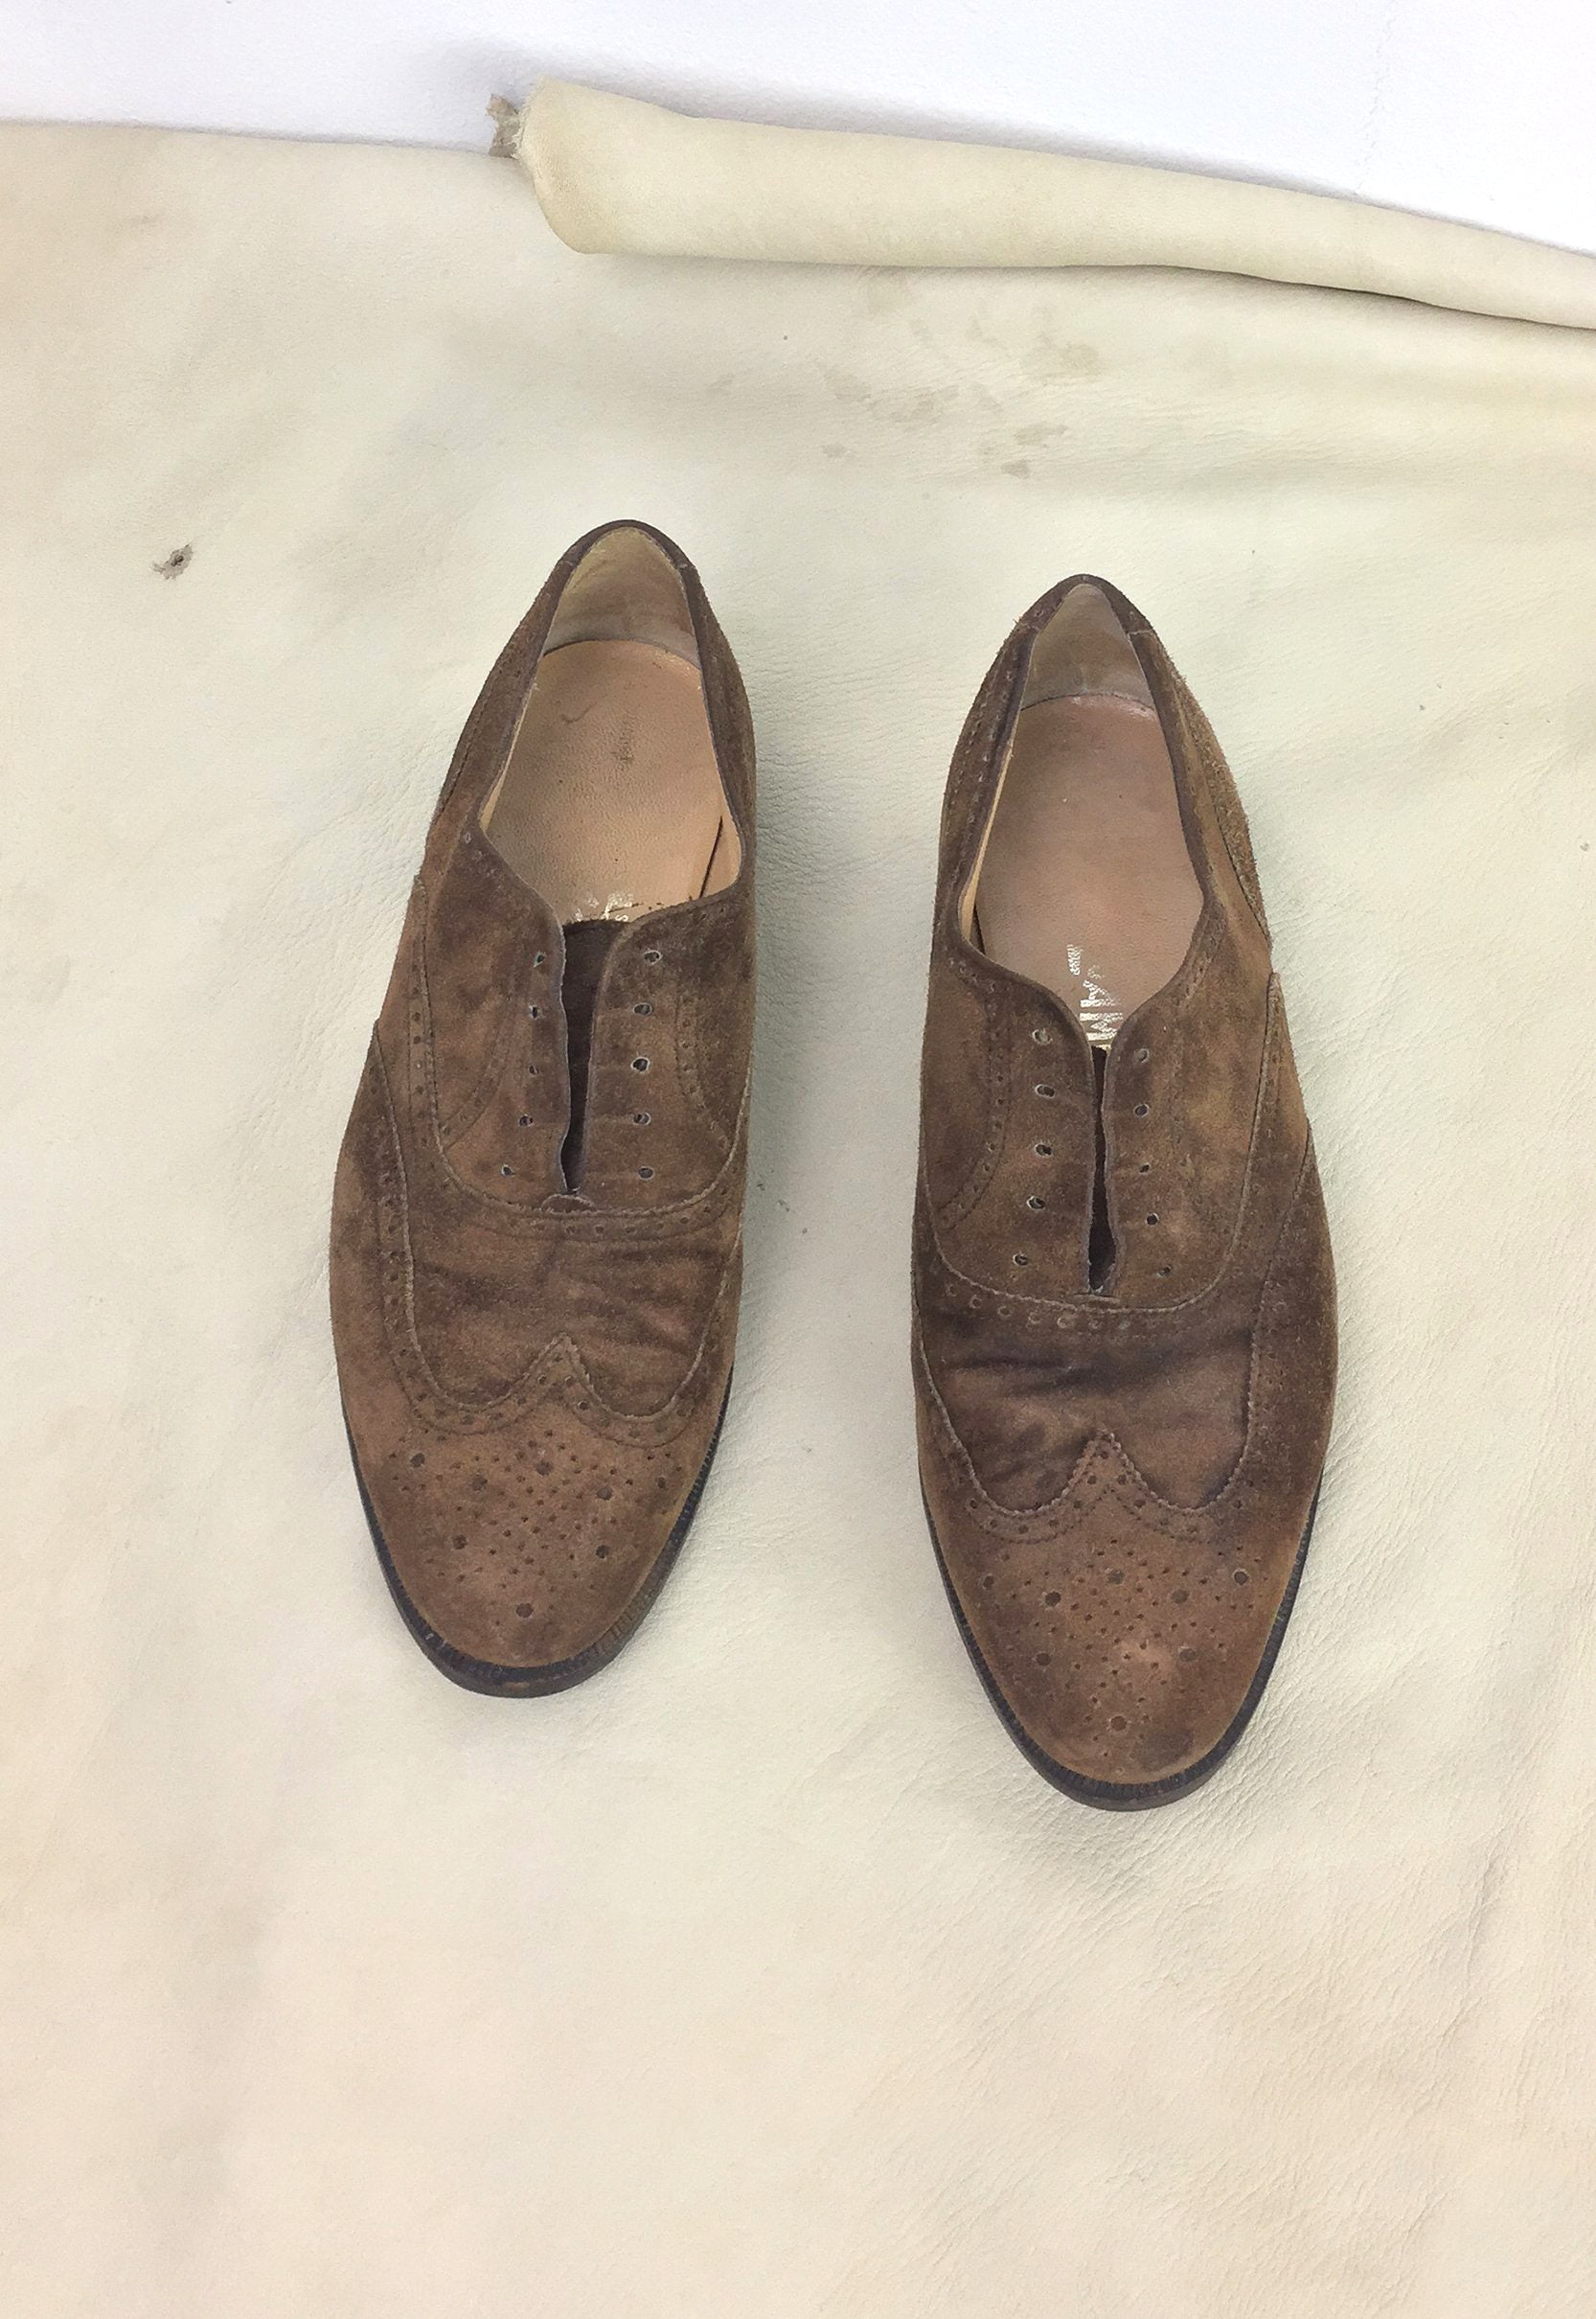 Vintage Ferragamo Laceless Oxfords